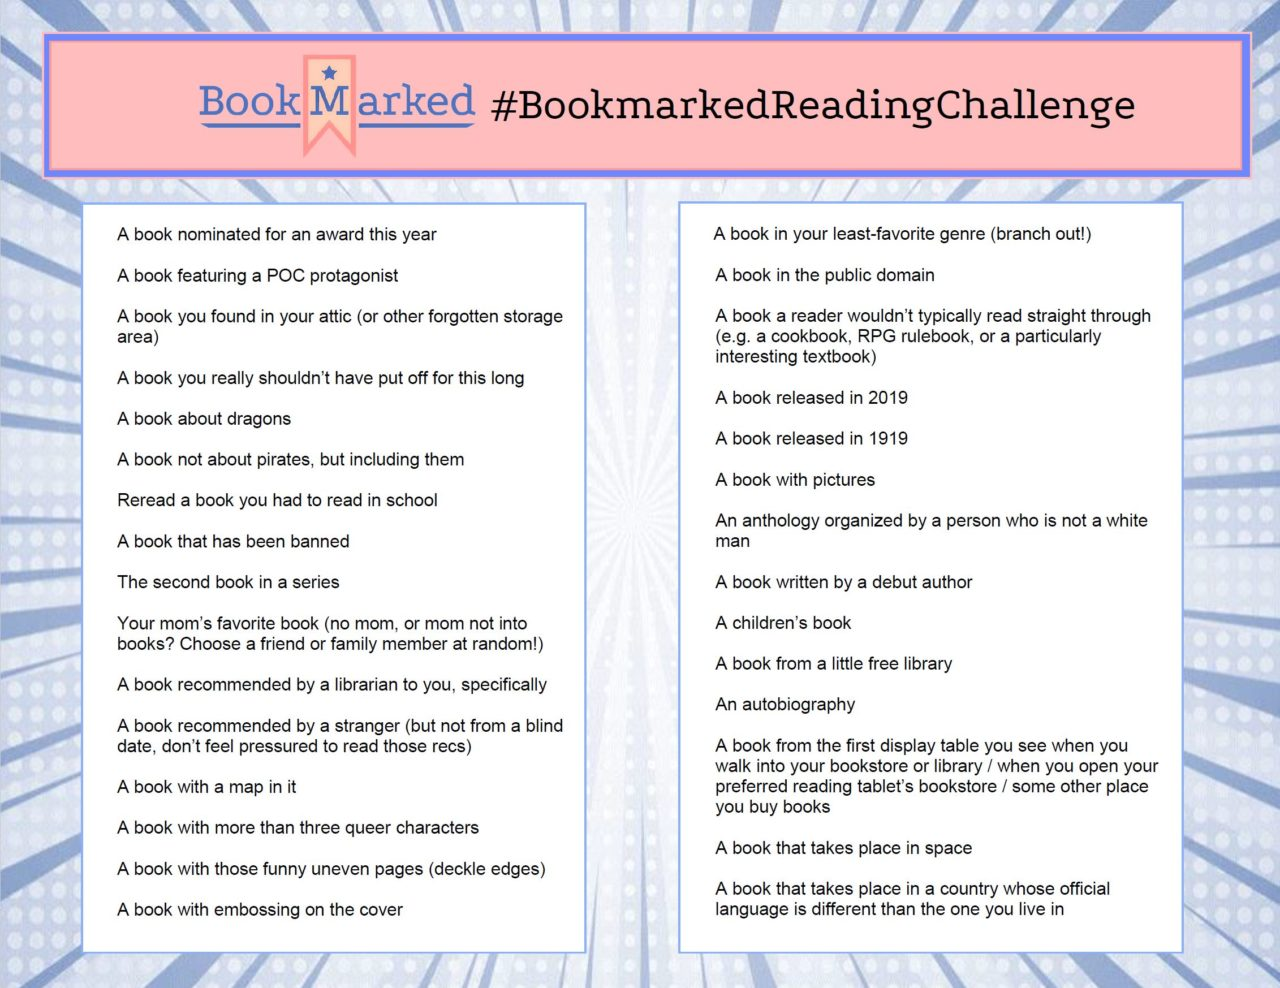 Bookmarked Reading Challenge (banner designed by Paige Allen)